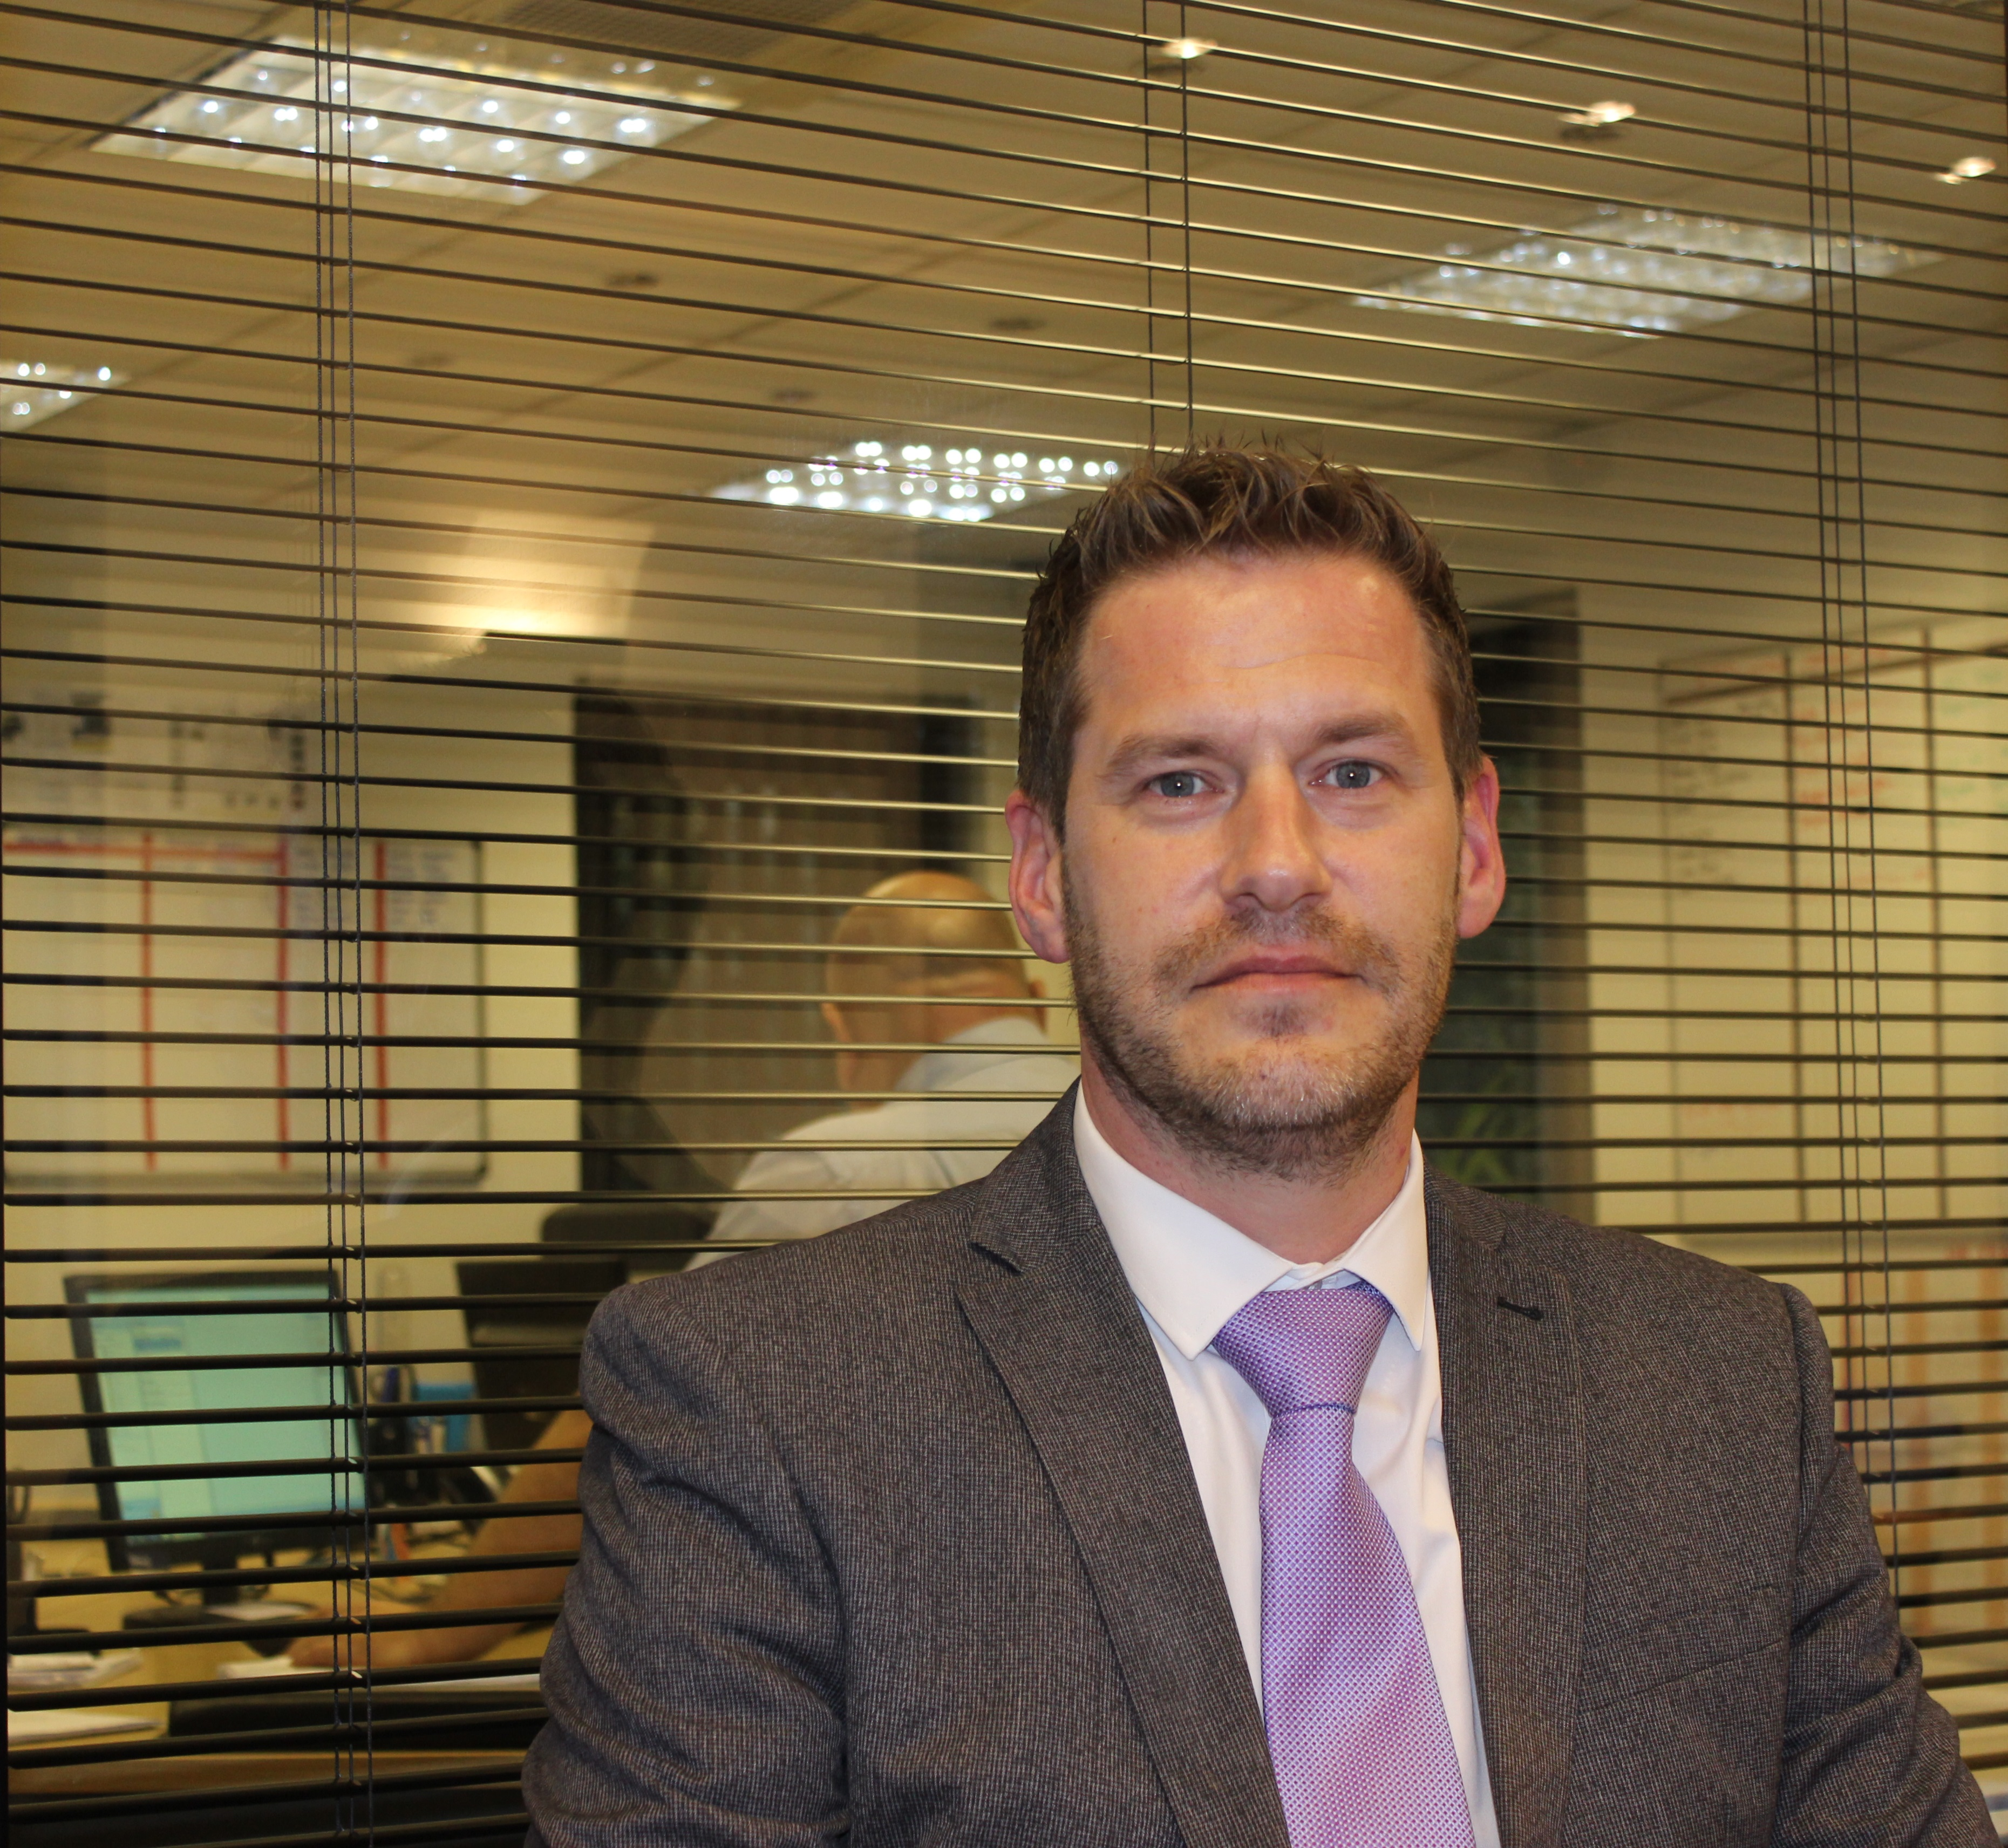 Ashley Long appointed as QS Recruitment Regional Manager